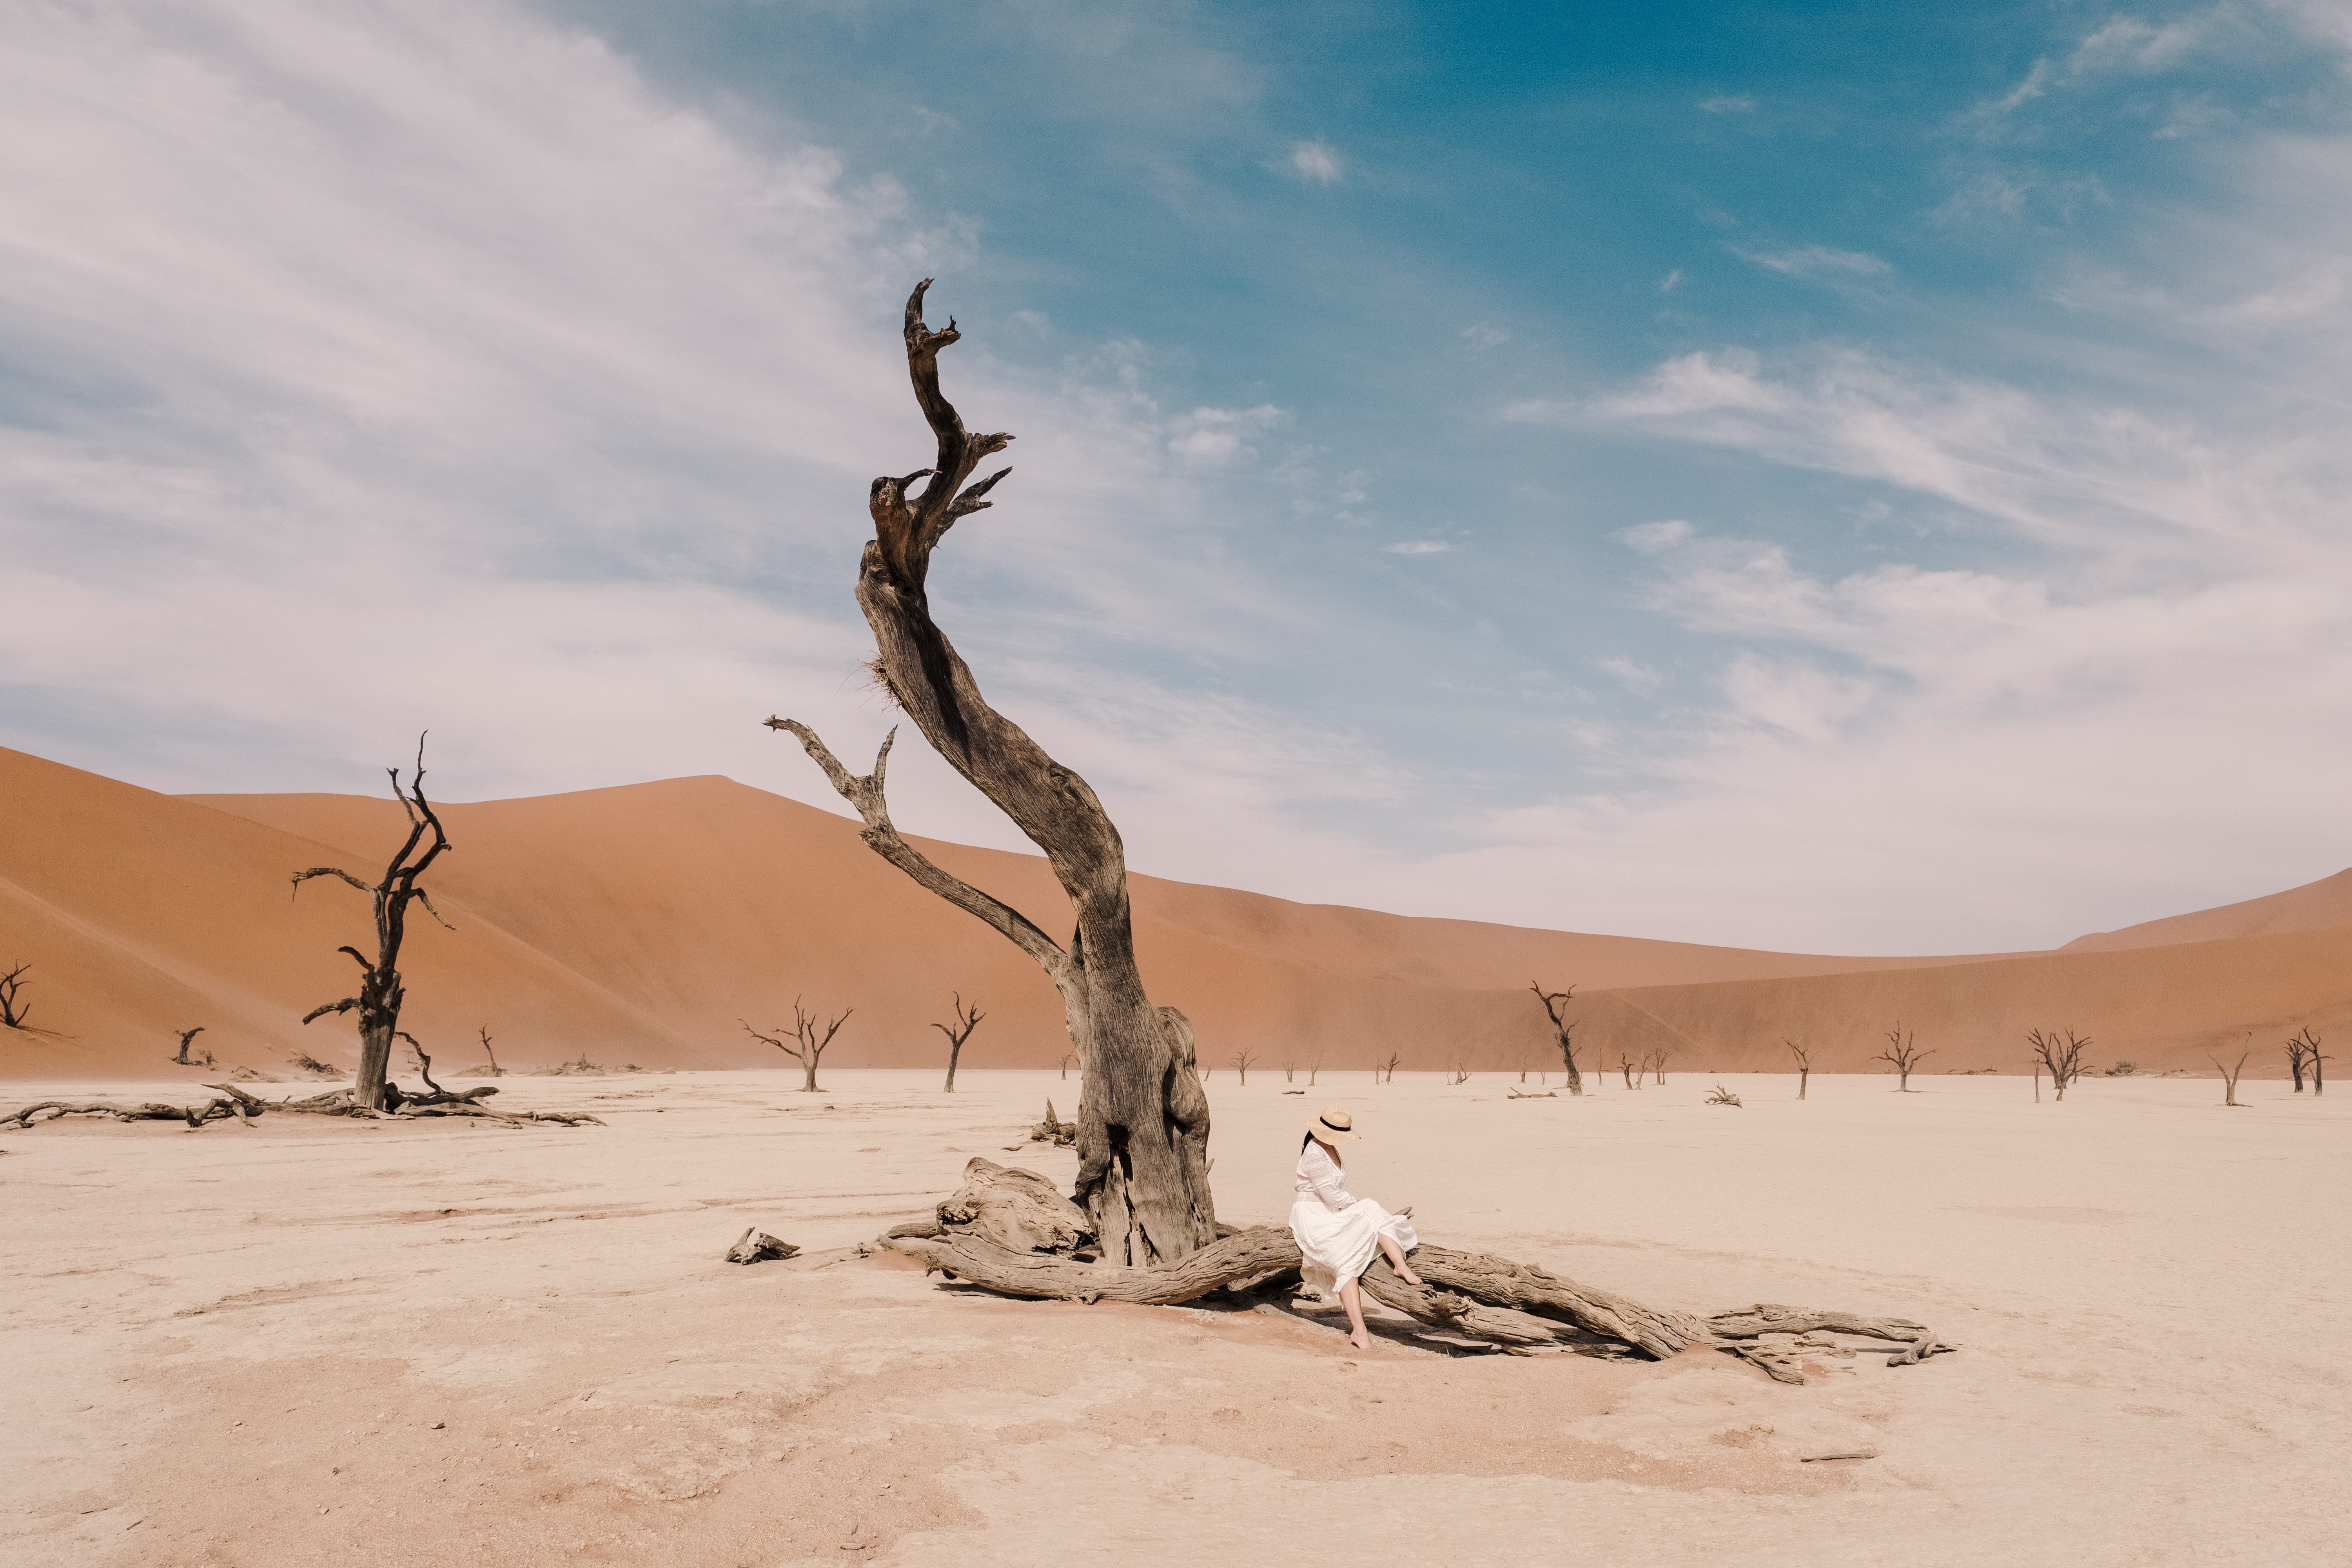 """""""These camel thorn trees were the catalyst for the trip, and they did not disappoint,"""" says Cui."""